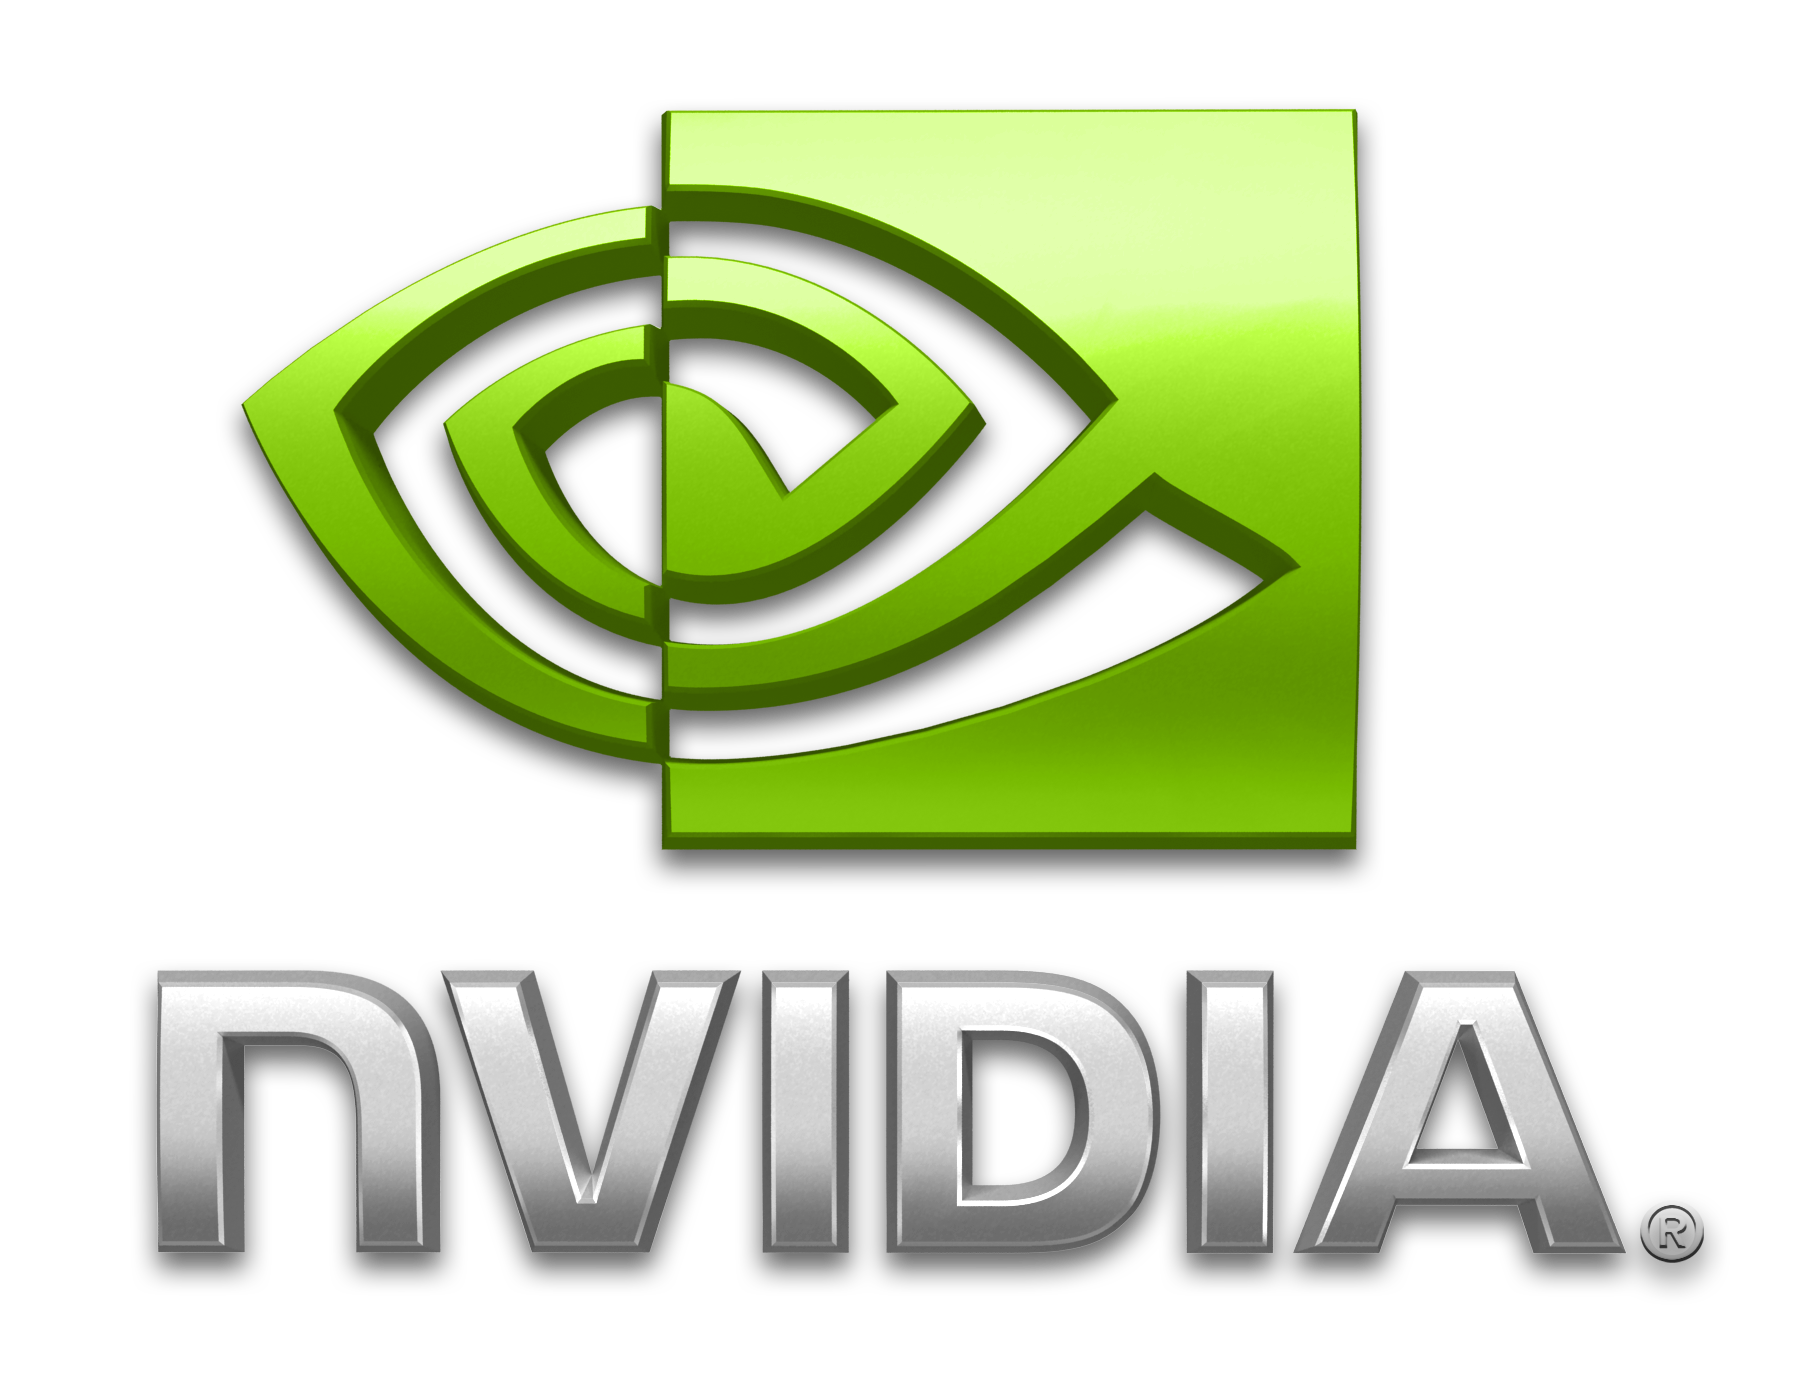 Nvidia quadruples display resolution by stacking two cheap LCD panels on top of each other